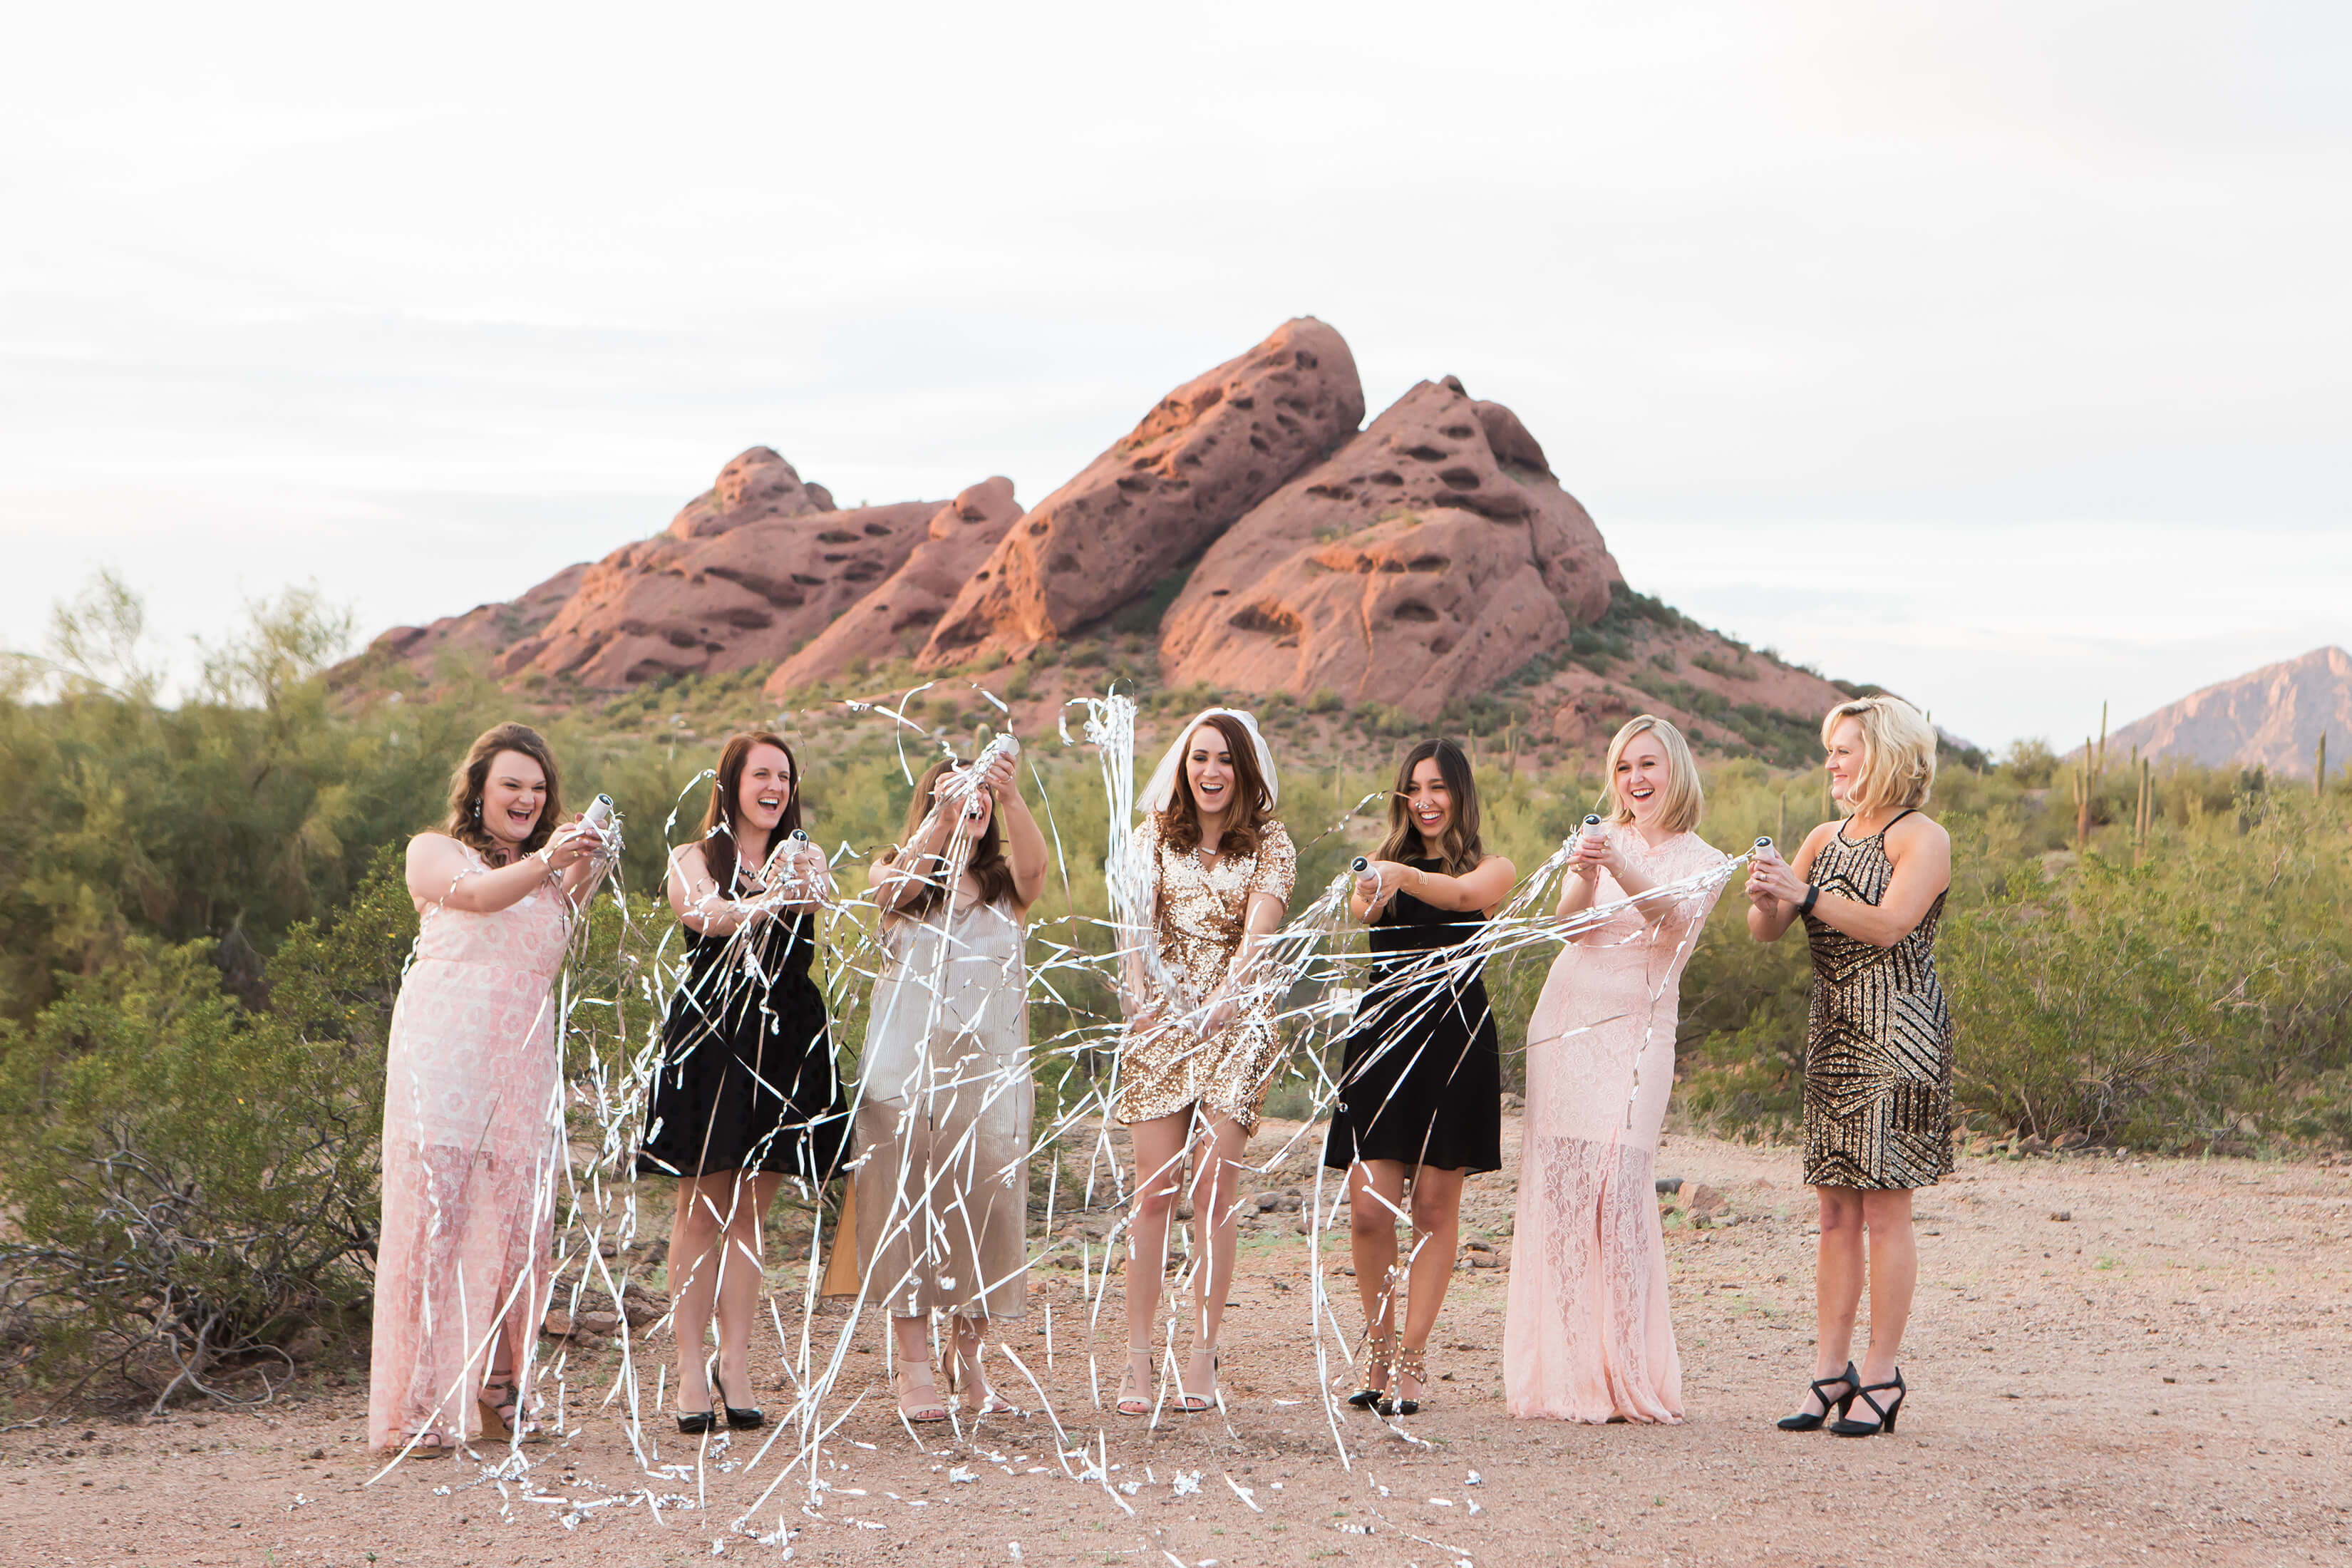 Bachelorette's opening a bottle of champagne in Scottsdale, Arizona